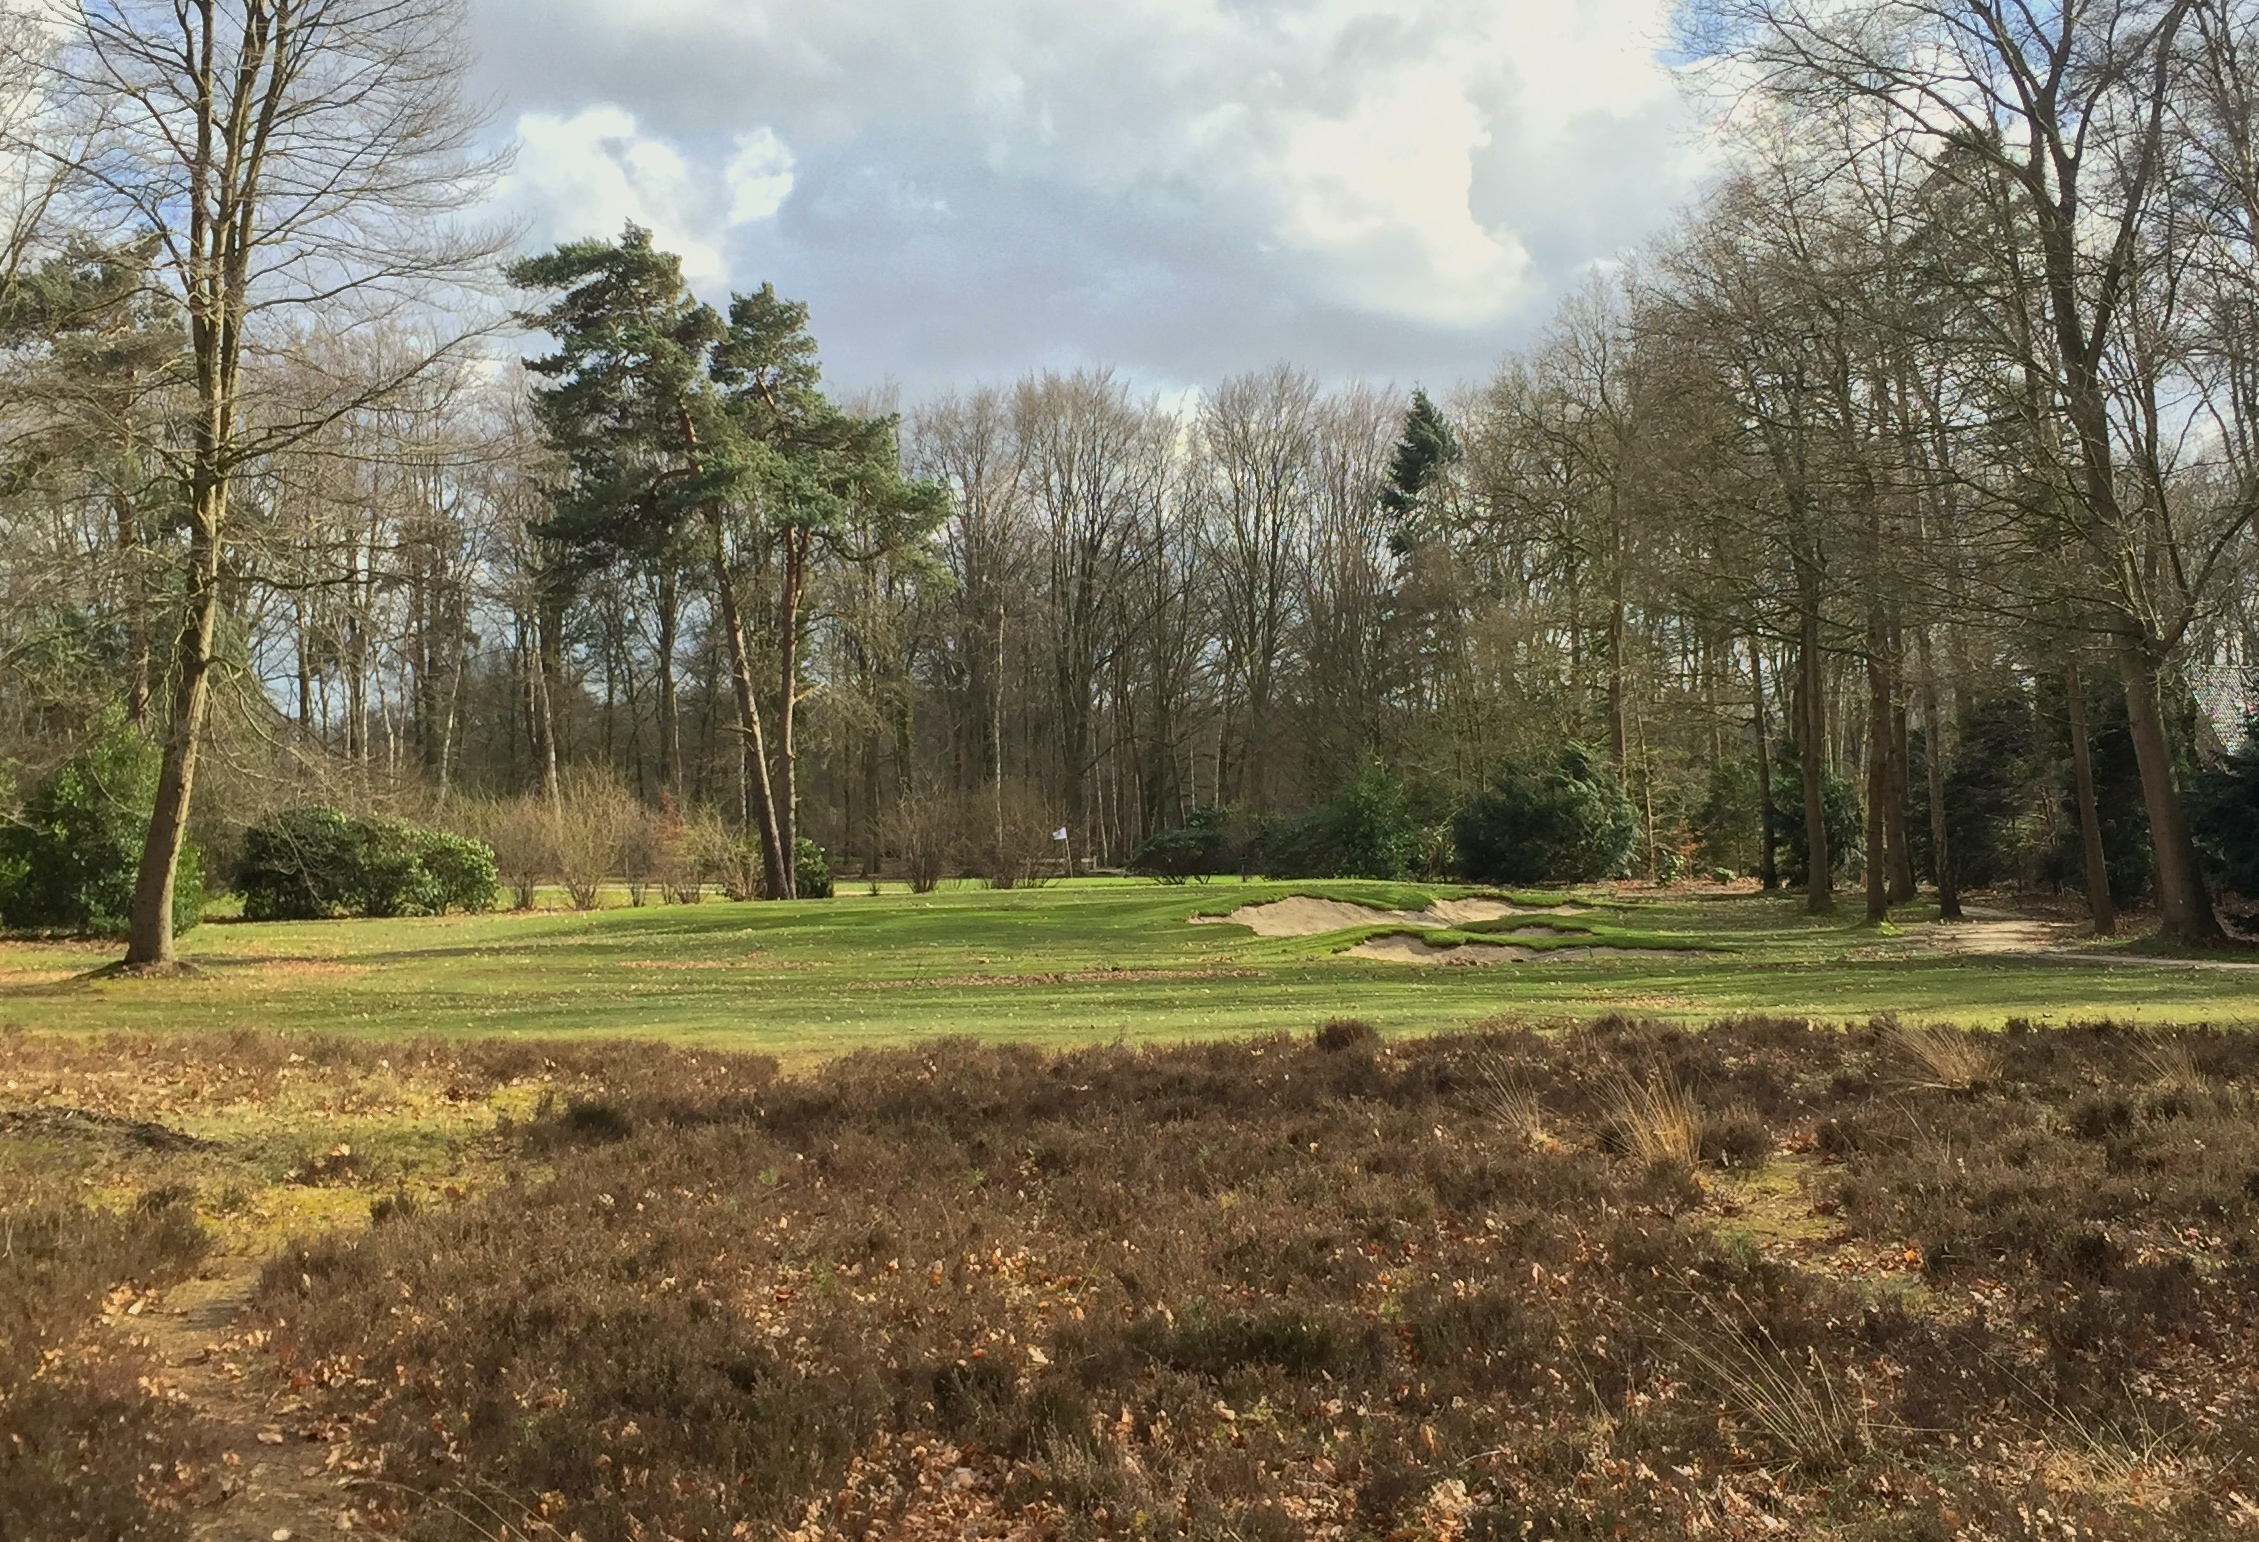 The 9th hole at the Sallandsche Golf Club in Diepenveen, Netherlands.